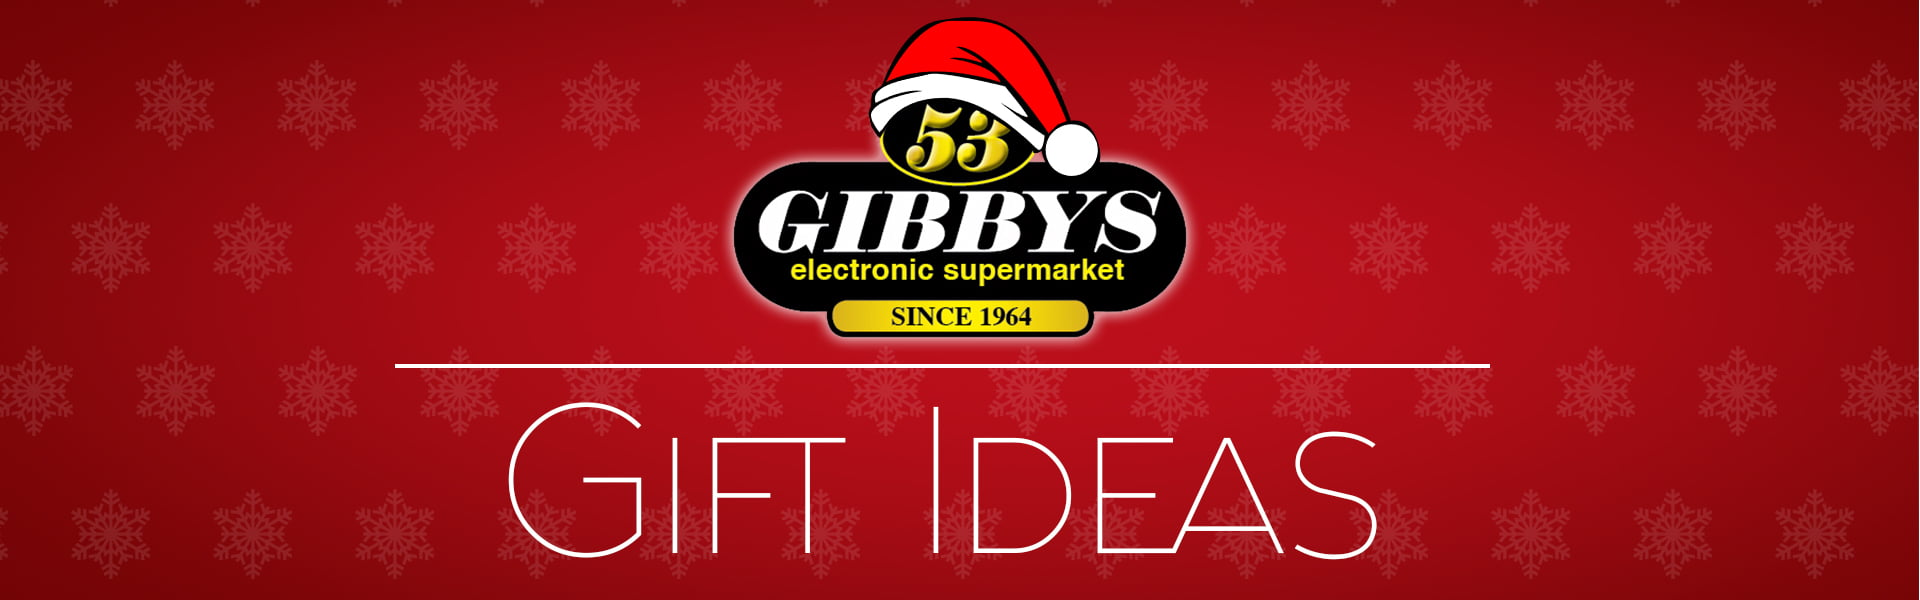 Gift Ideas header